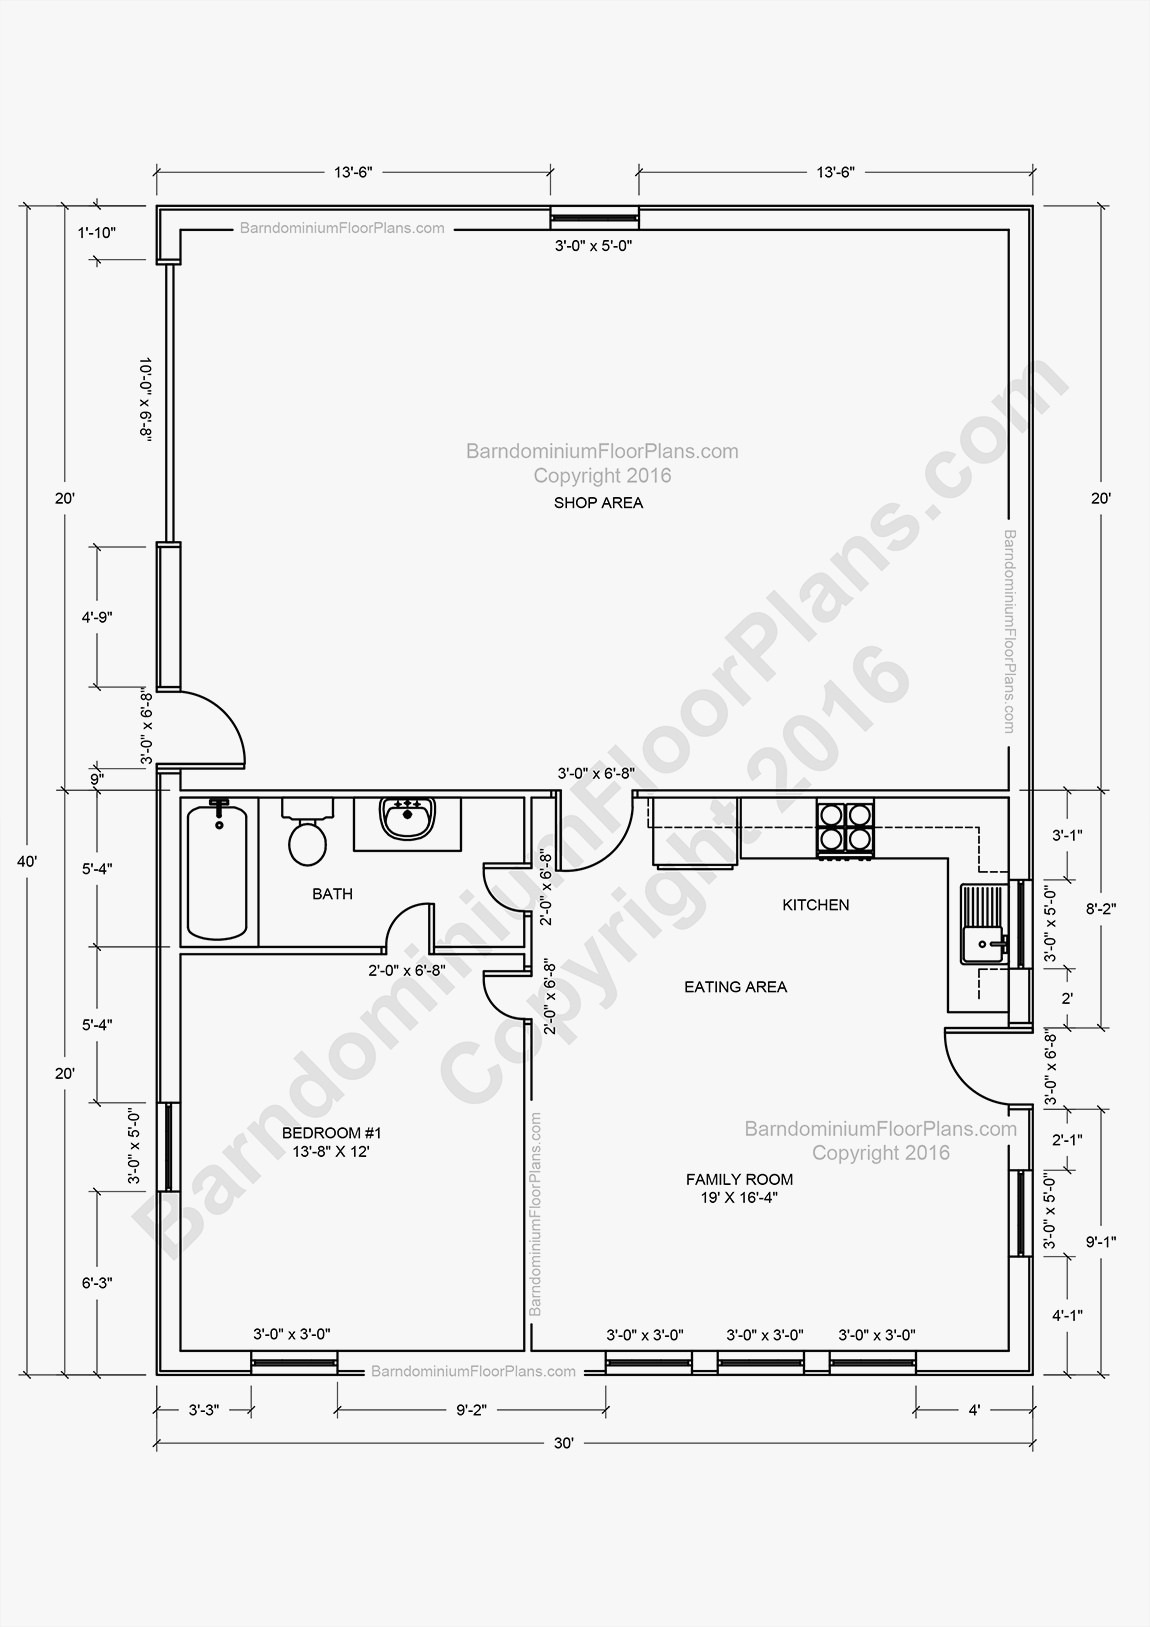 shop houses floor plans new barndominium floor plans pole barn house plans and metal barn homes of shop houses floor plans 1